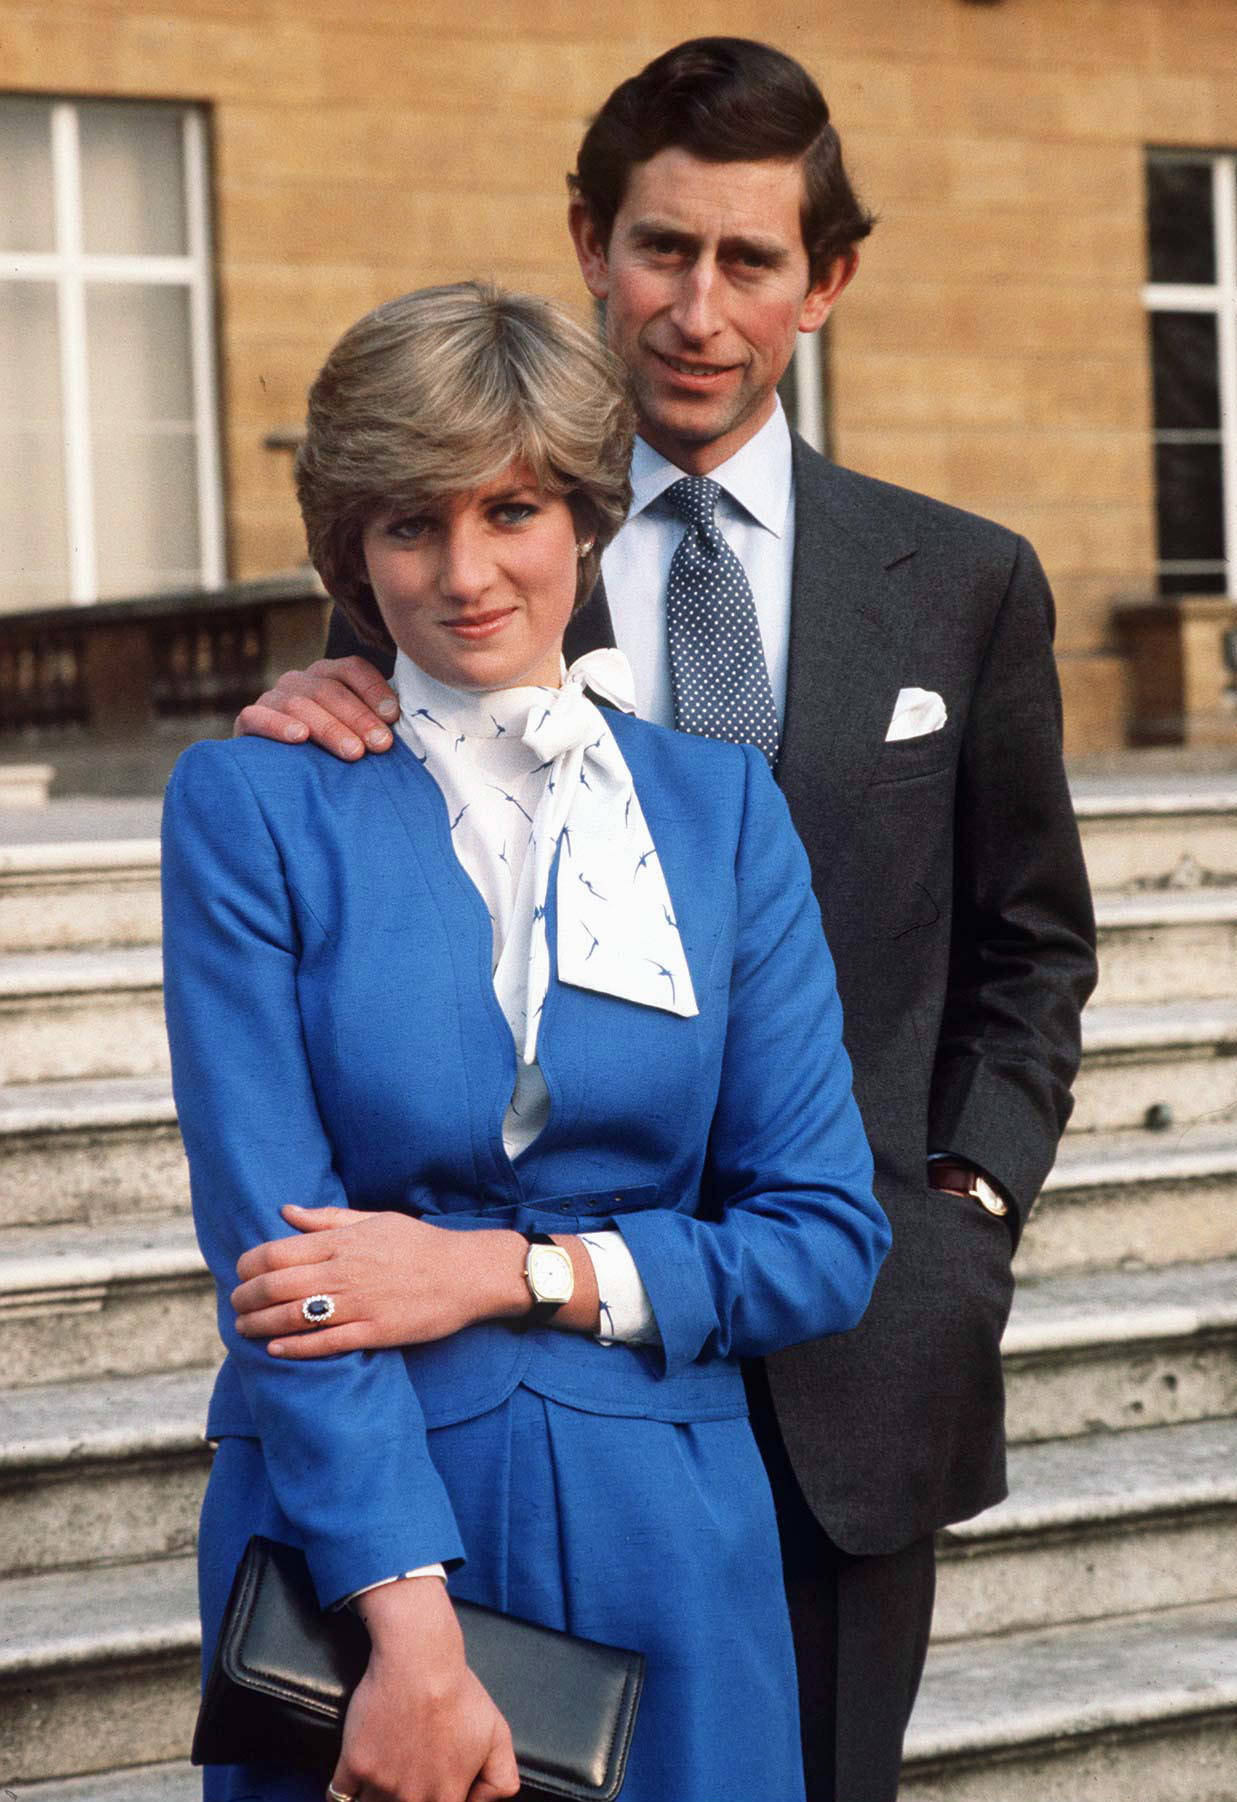 Diana selected a deep blue skirt suit and white pussy bow blouse for her official engagement photos in 1981; the suit's color complemented the sapphire engagement ring she received from Prince Charles.